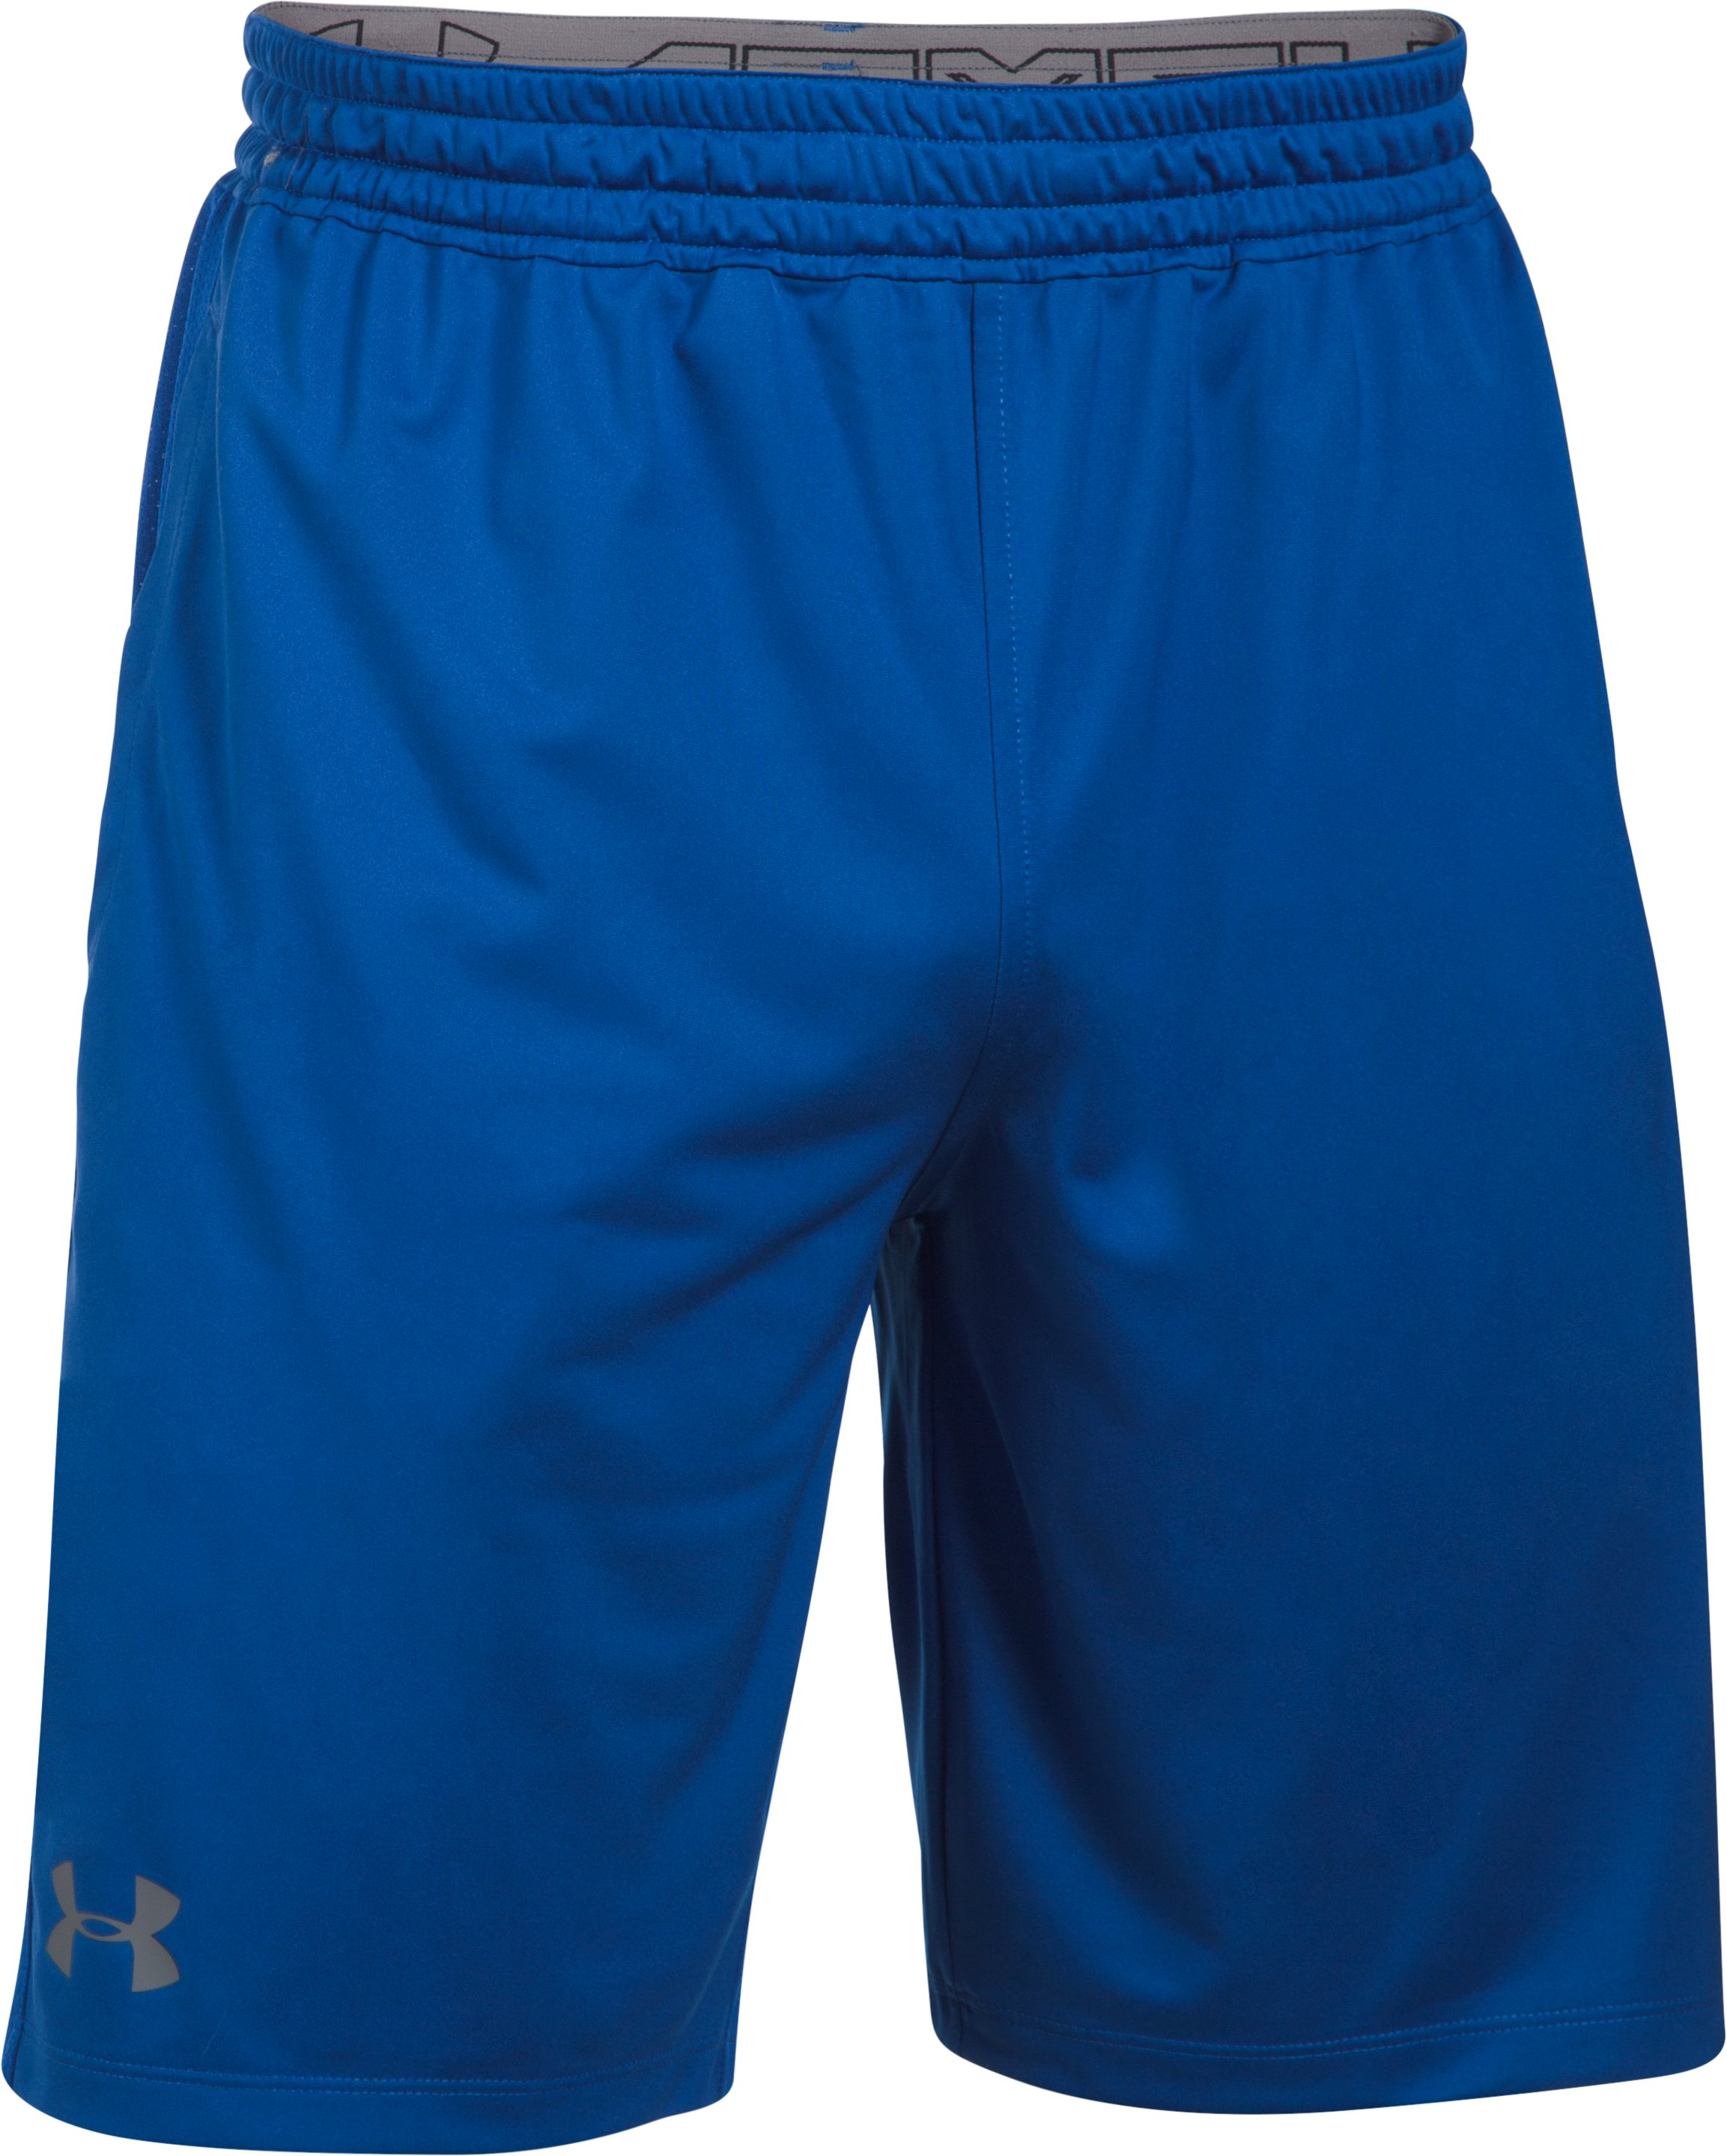 Men's HeatGear® Training Shorts, Royal, undefined